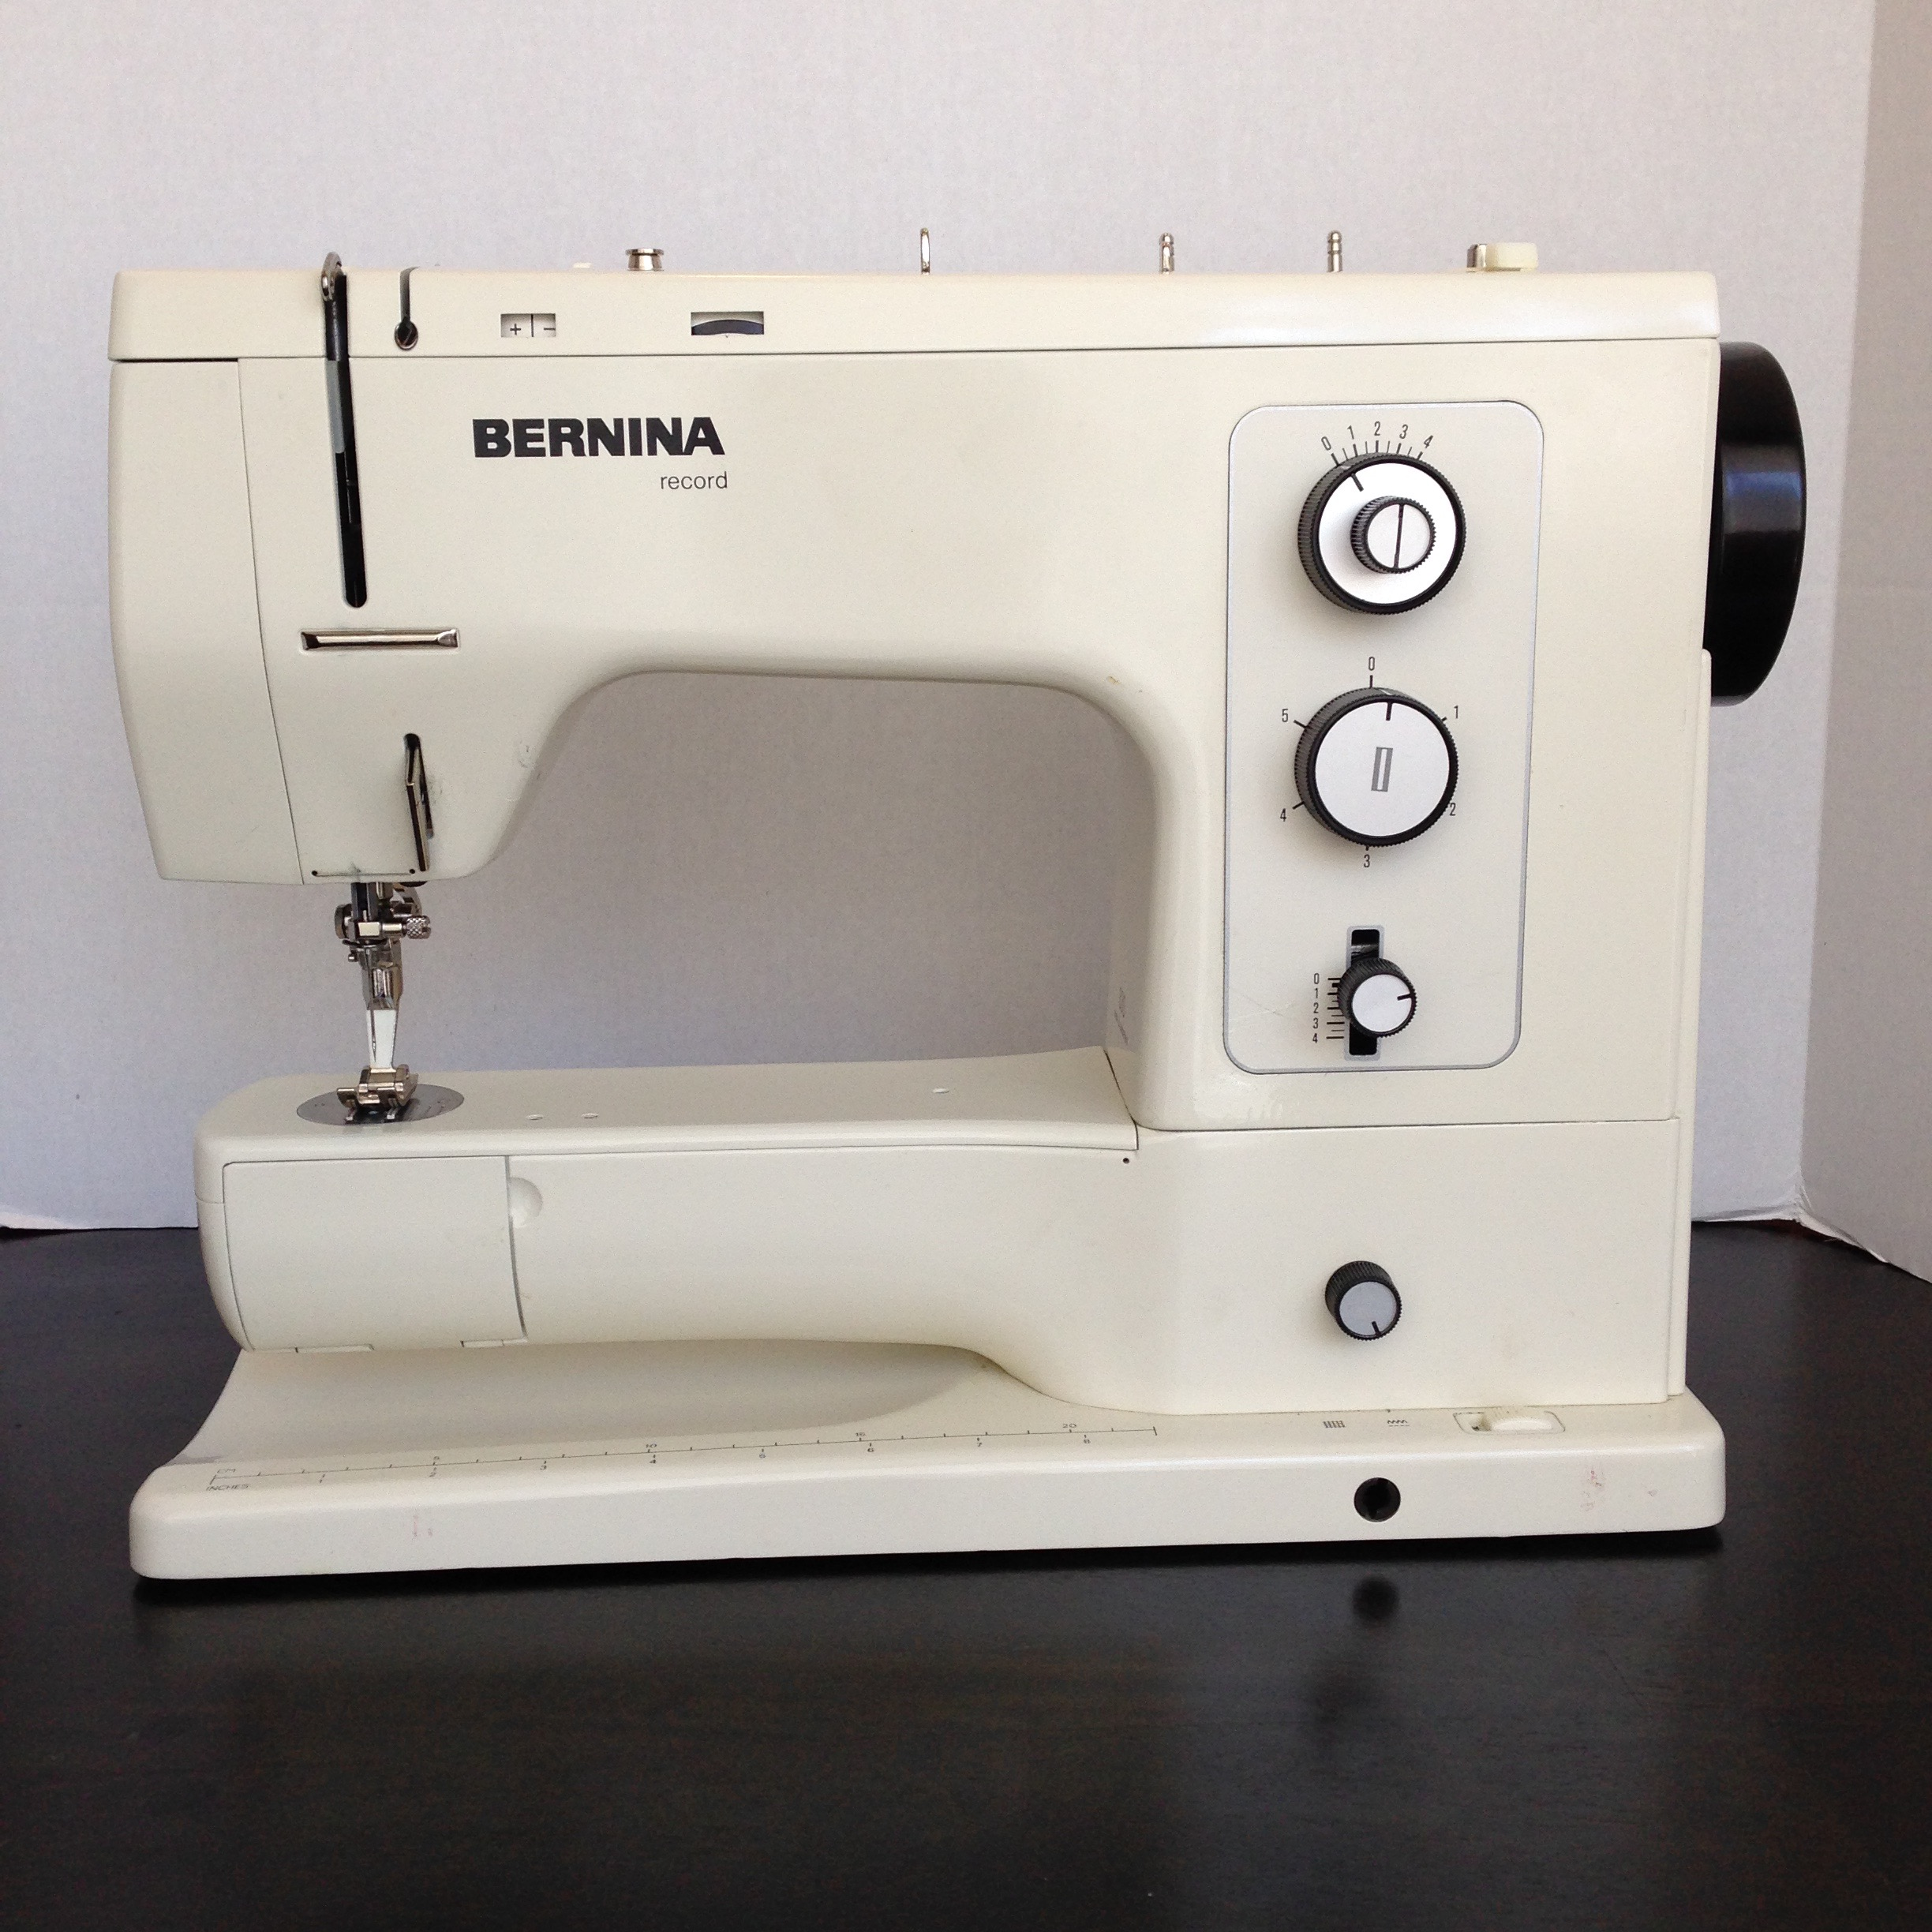 Bernina-830-Record-005.jpg